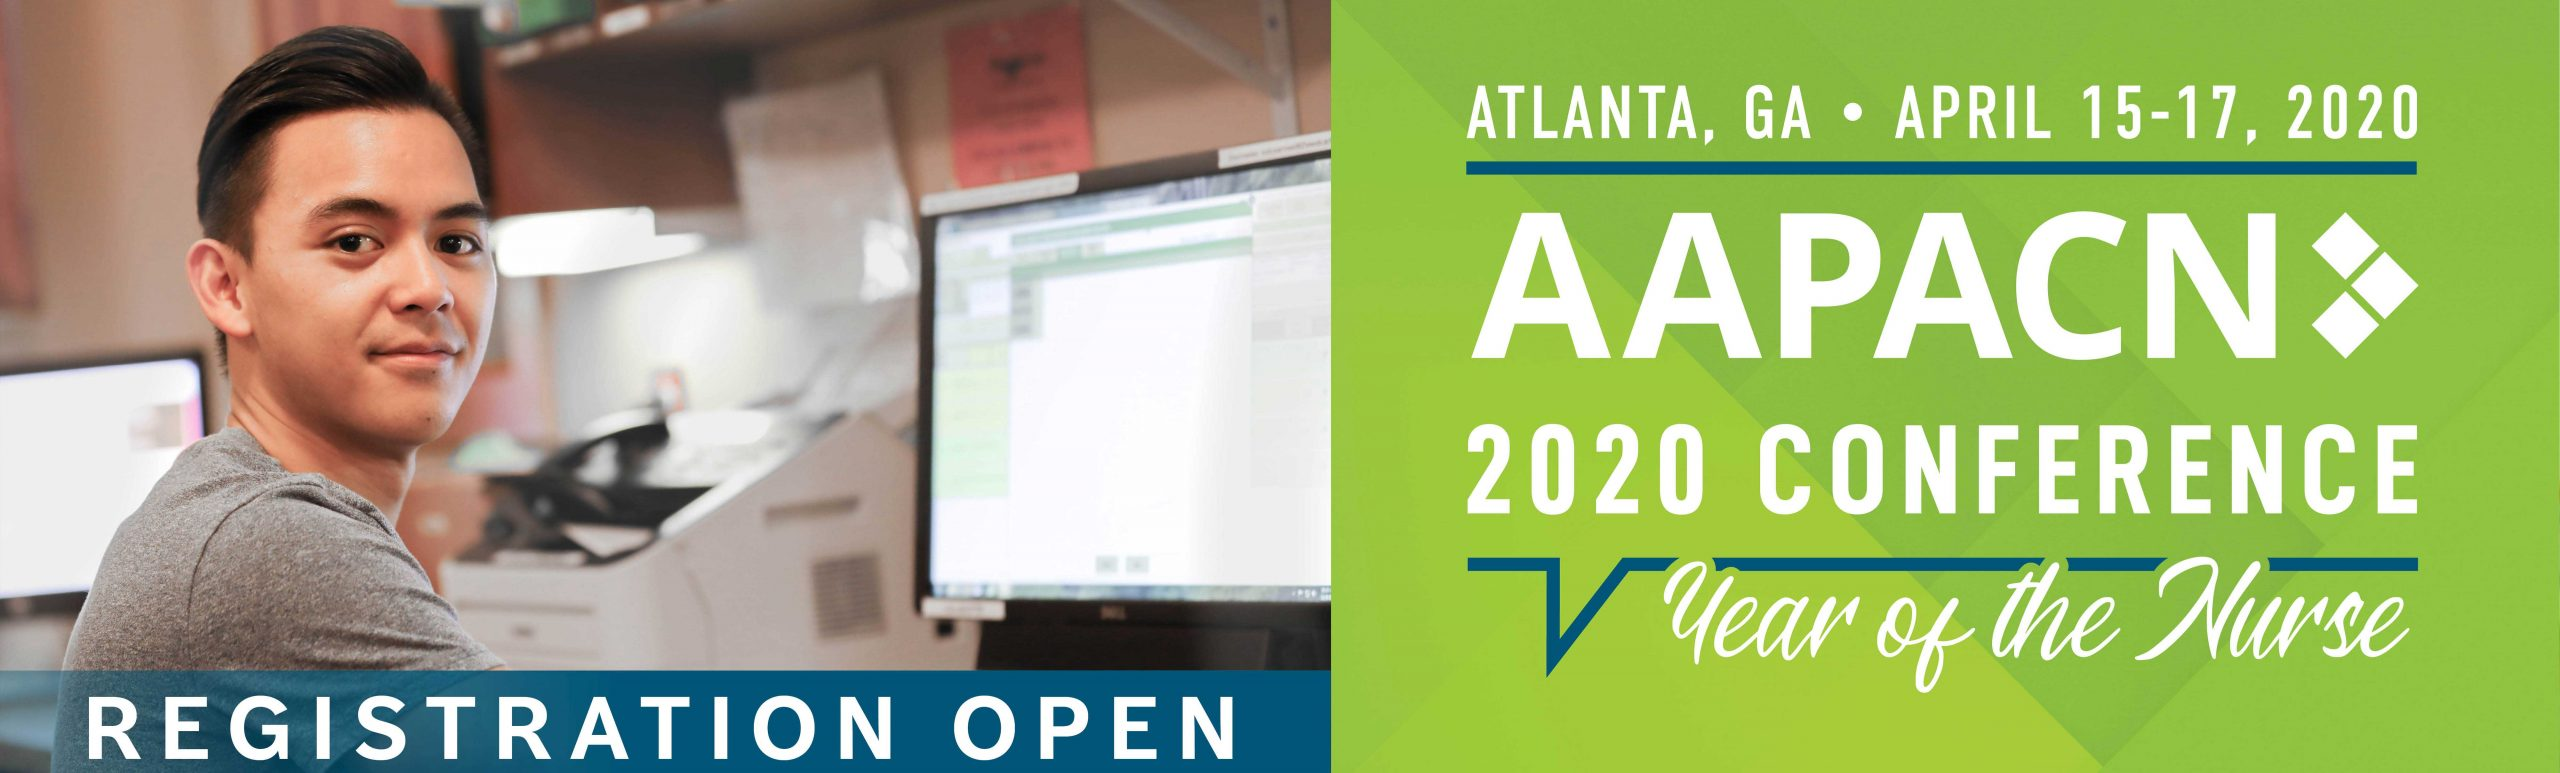 Photo of nurse assessment coordinator planning to attend AAPACN Conference April 15-17, 2020 in Atlanta